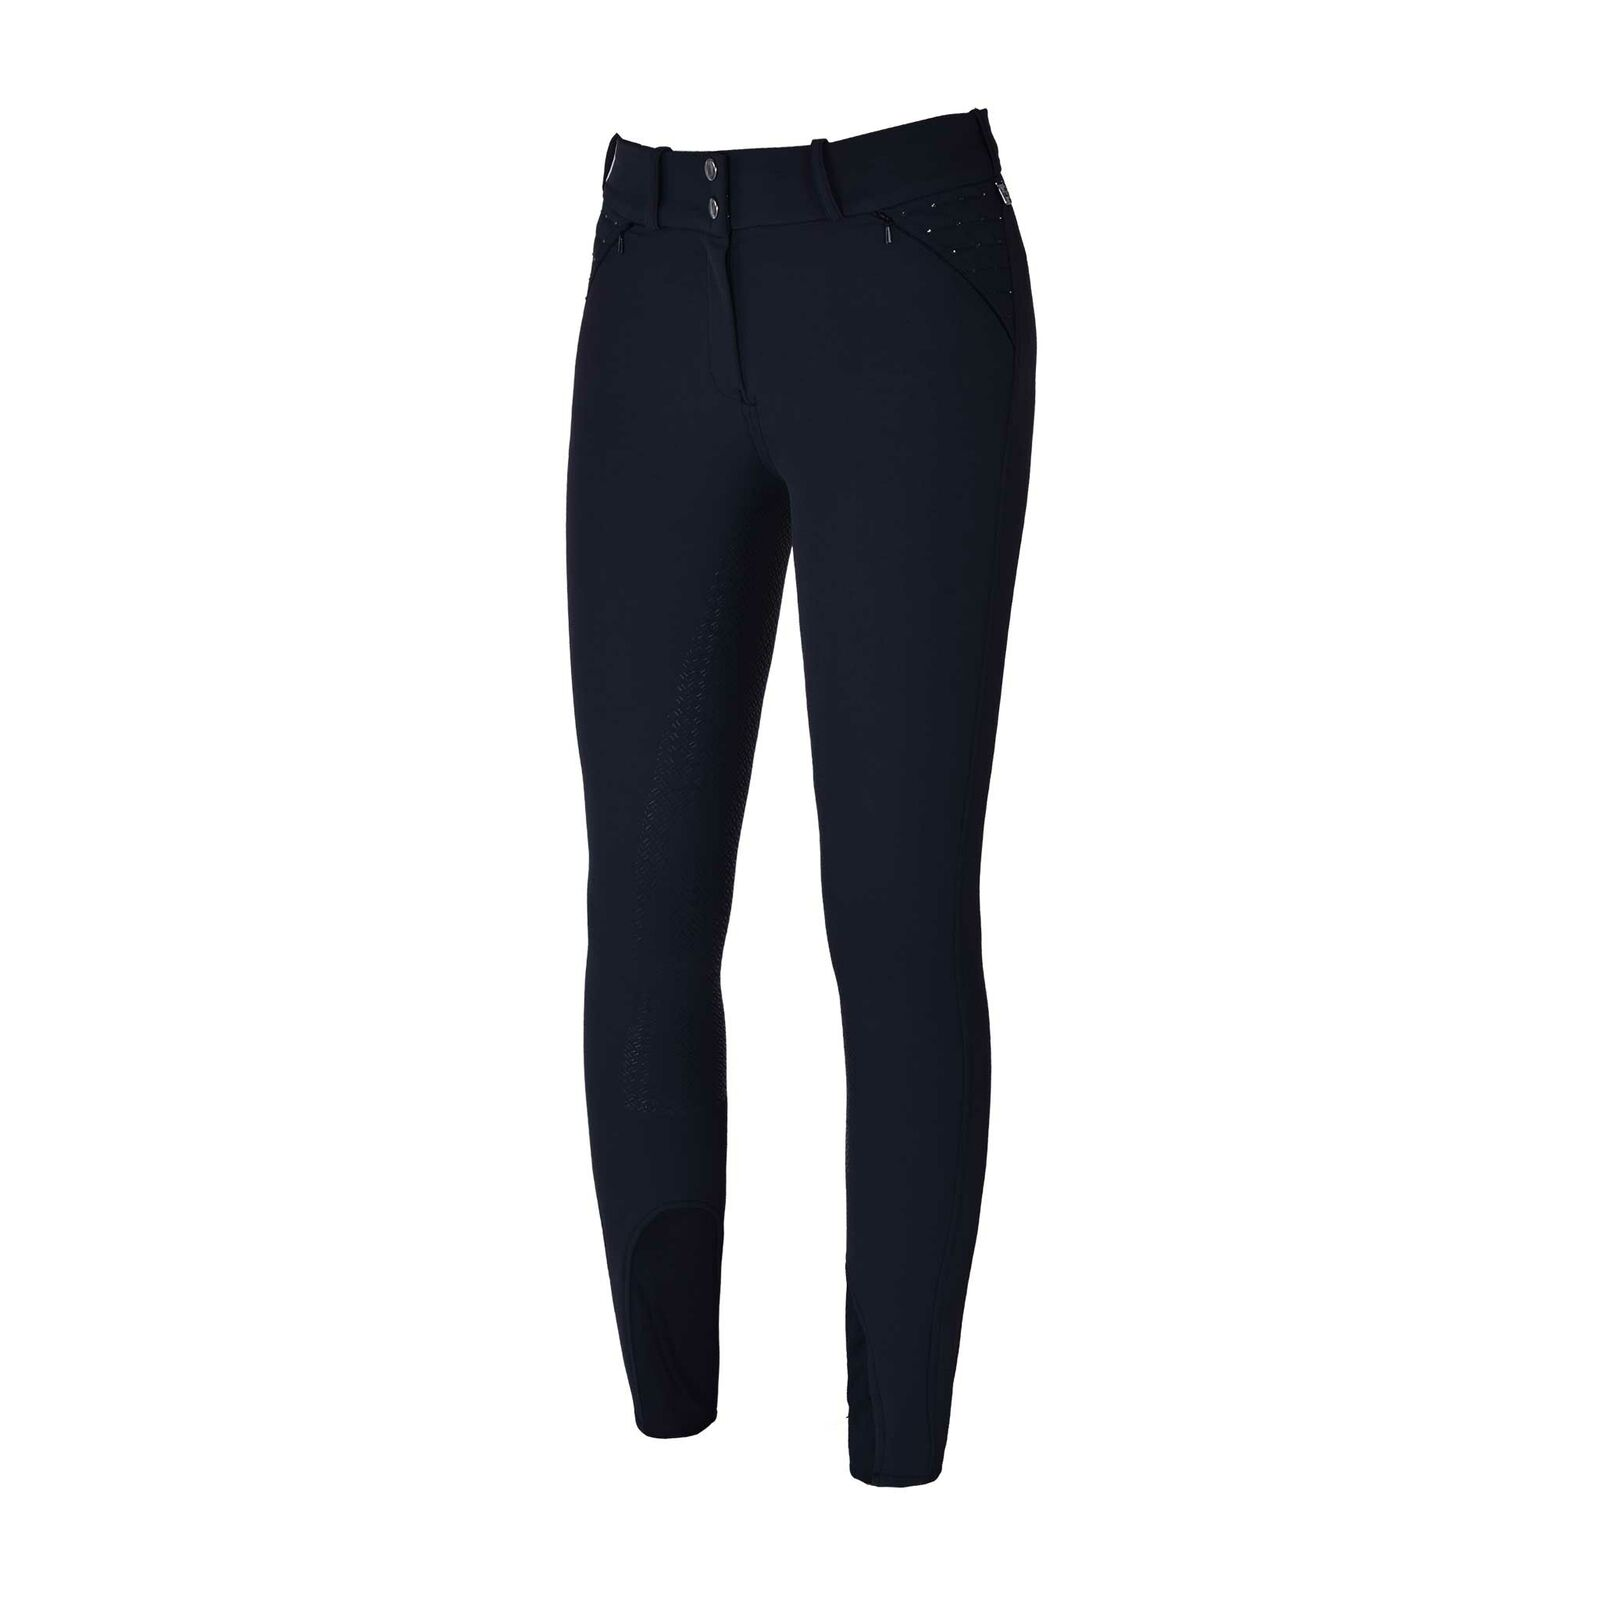 Koningsland Ladies Breeches Kadi met Full Grip Navy Jurkage 2019